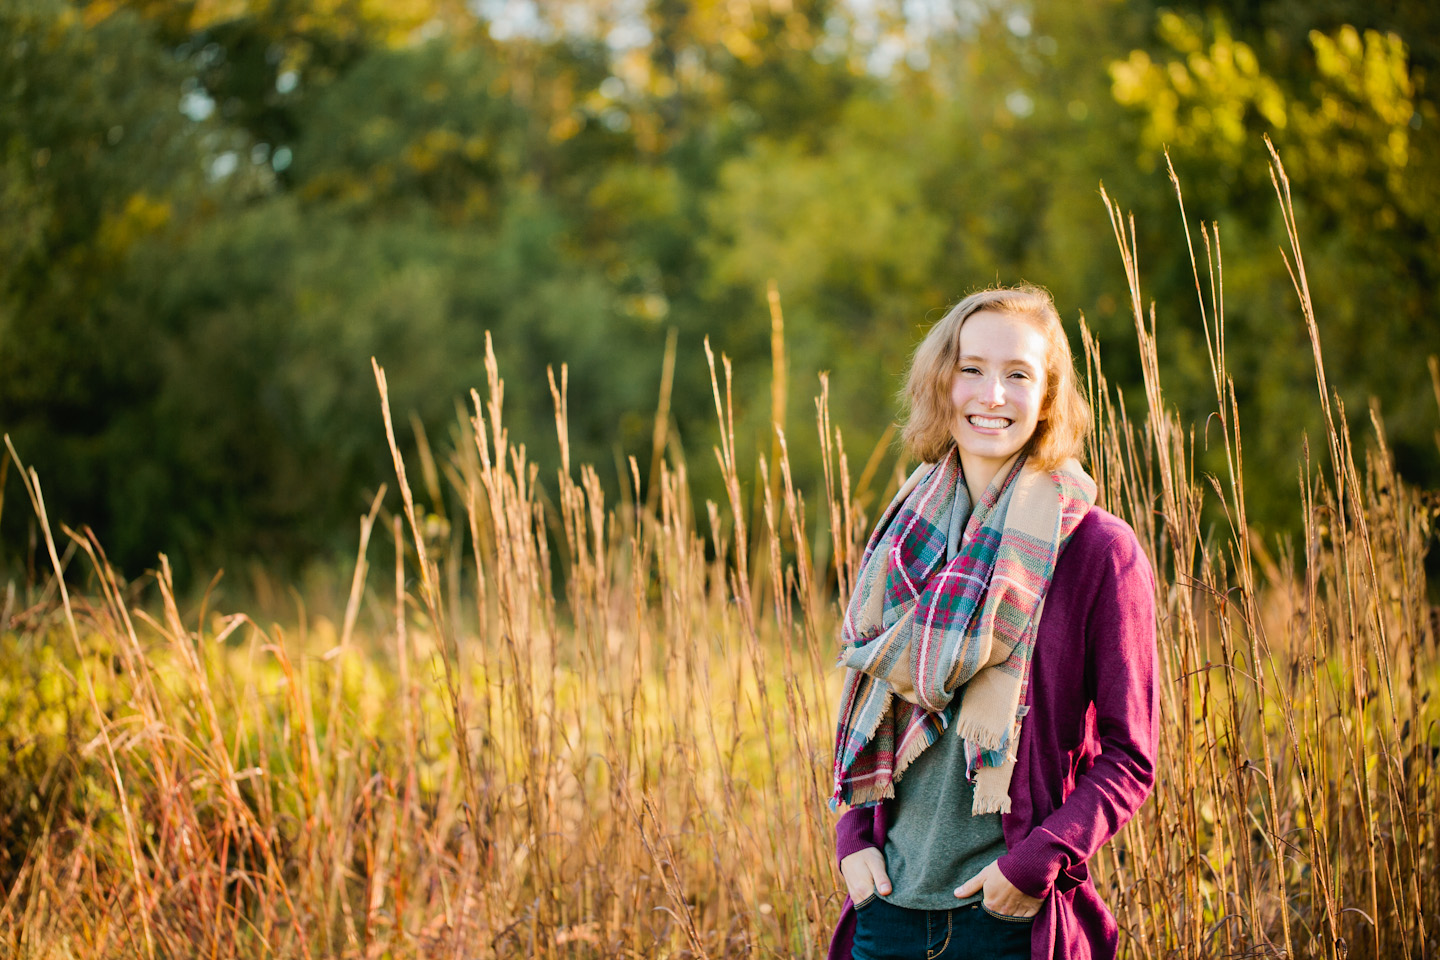 Mid-Prairie senior photographer Dowling Senior photos